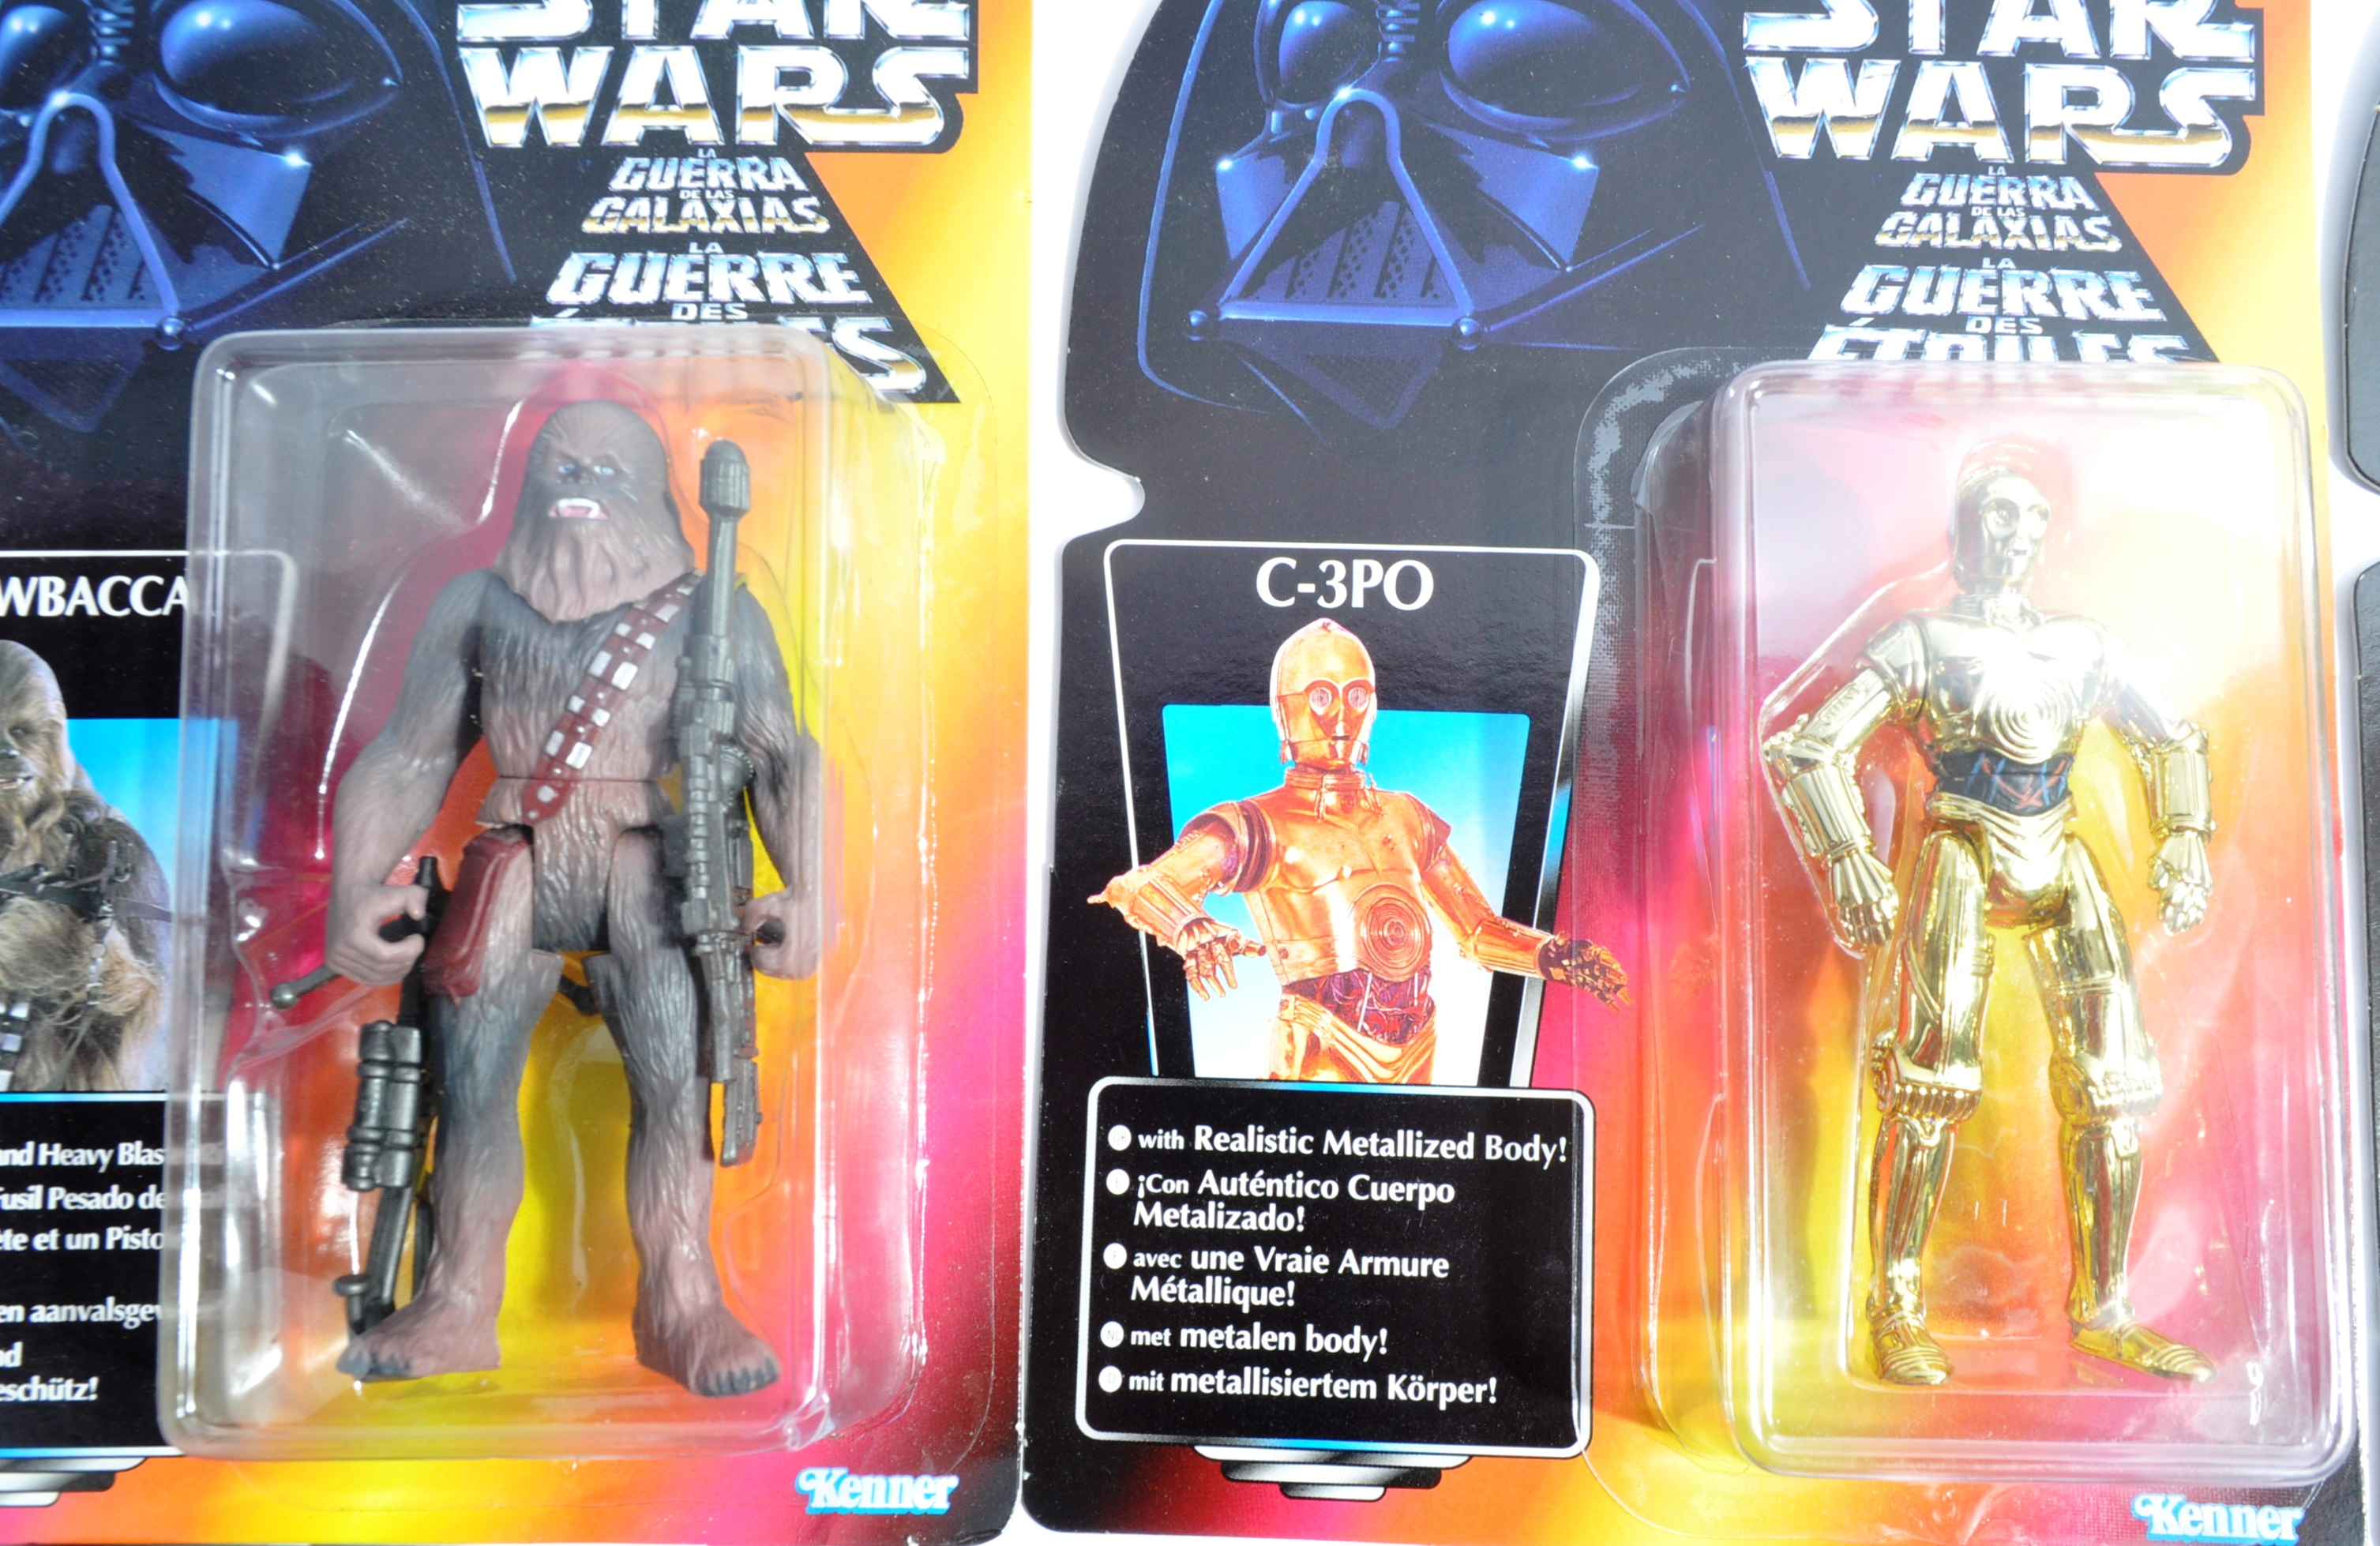 STAR WARS - COLLECTION OF KENNER CARDED ACTION FIGURES - Image 4 of 6